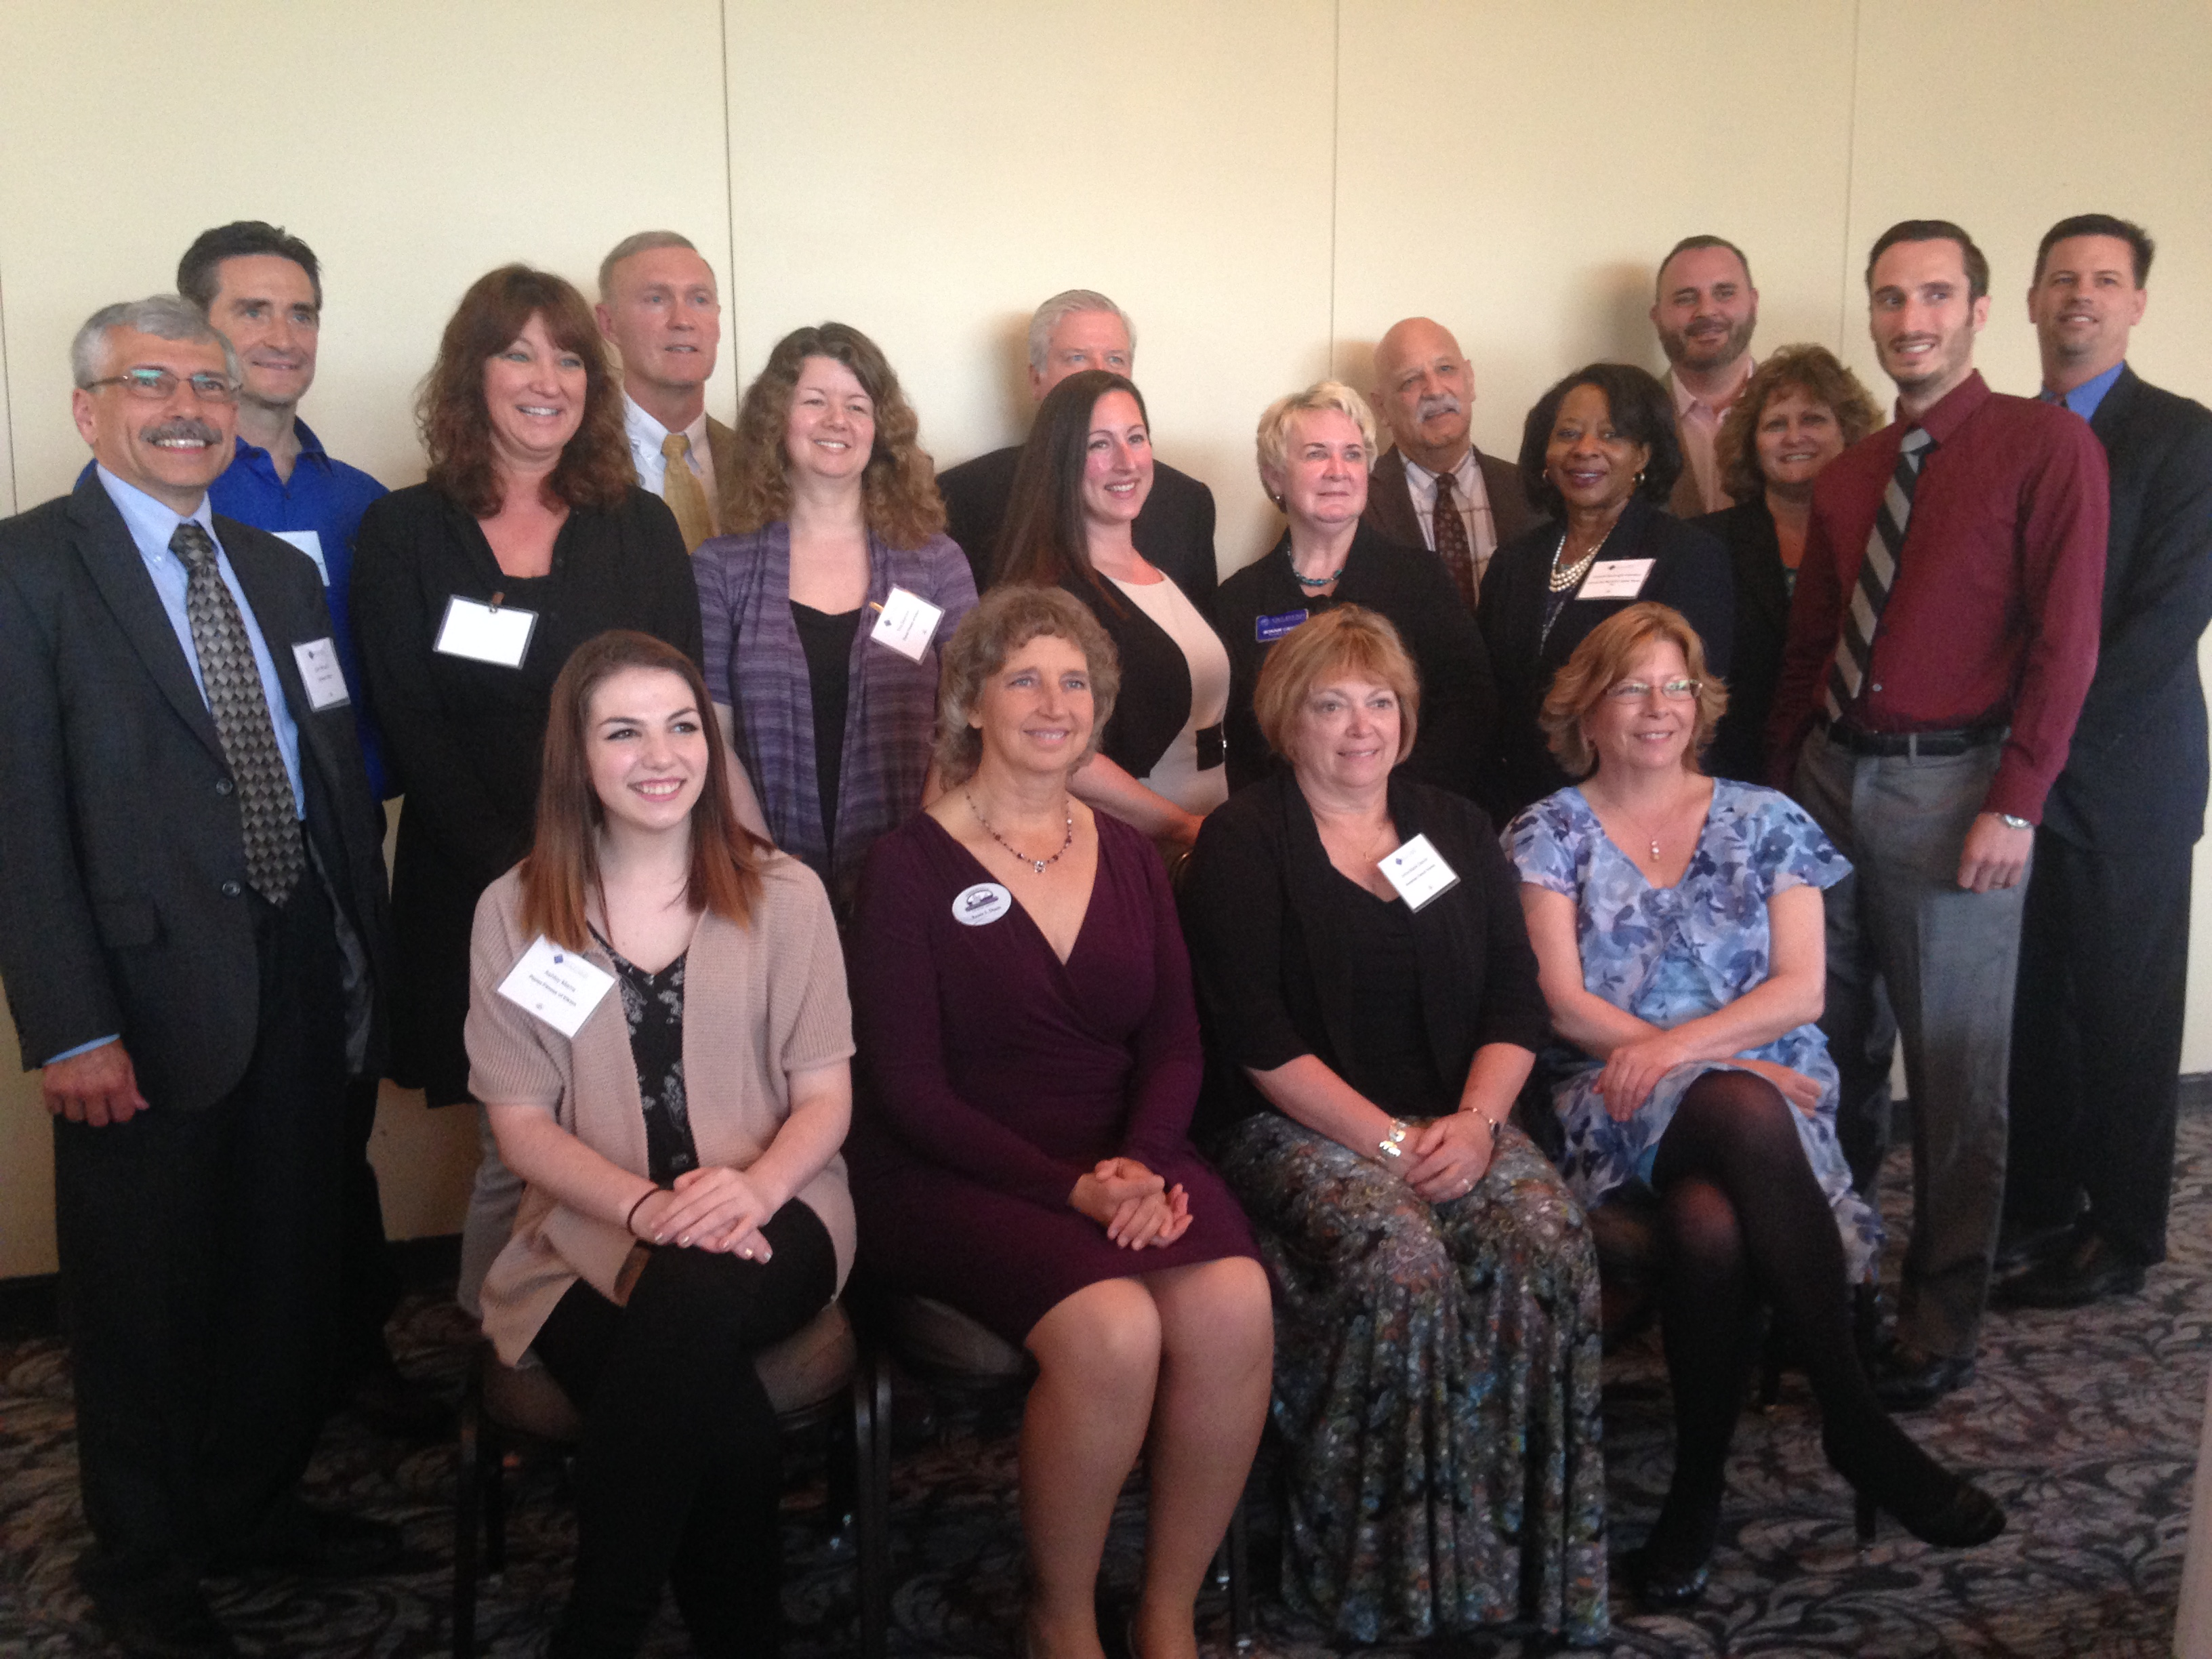 Cecil County Chamber Shares Community Pride with 2016 Business Spotlight Luncheon